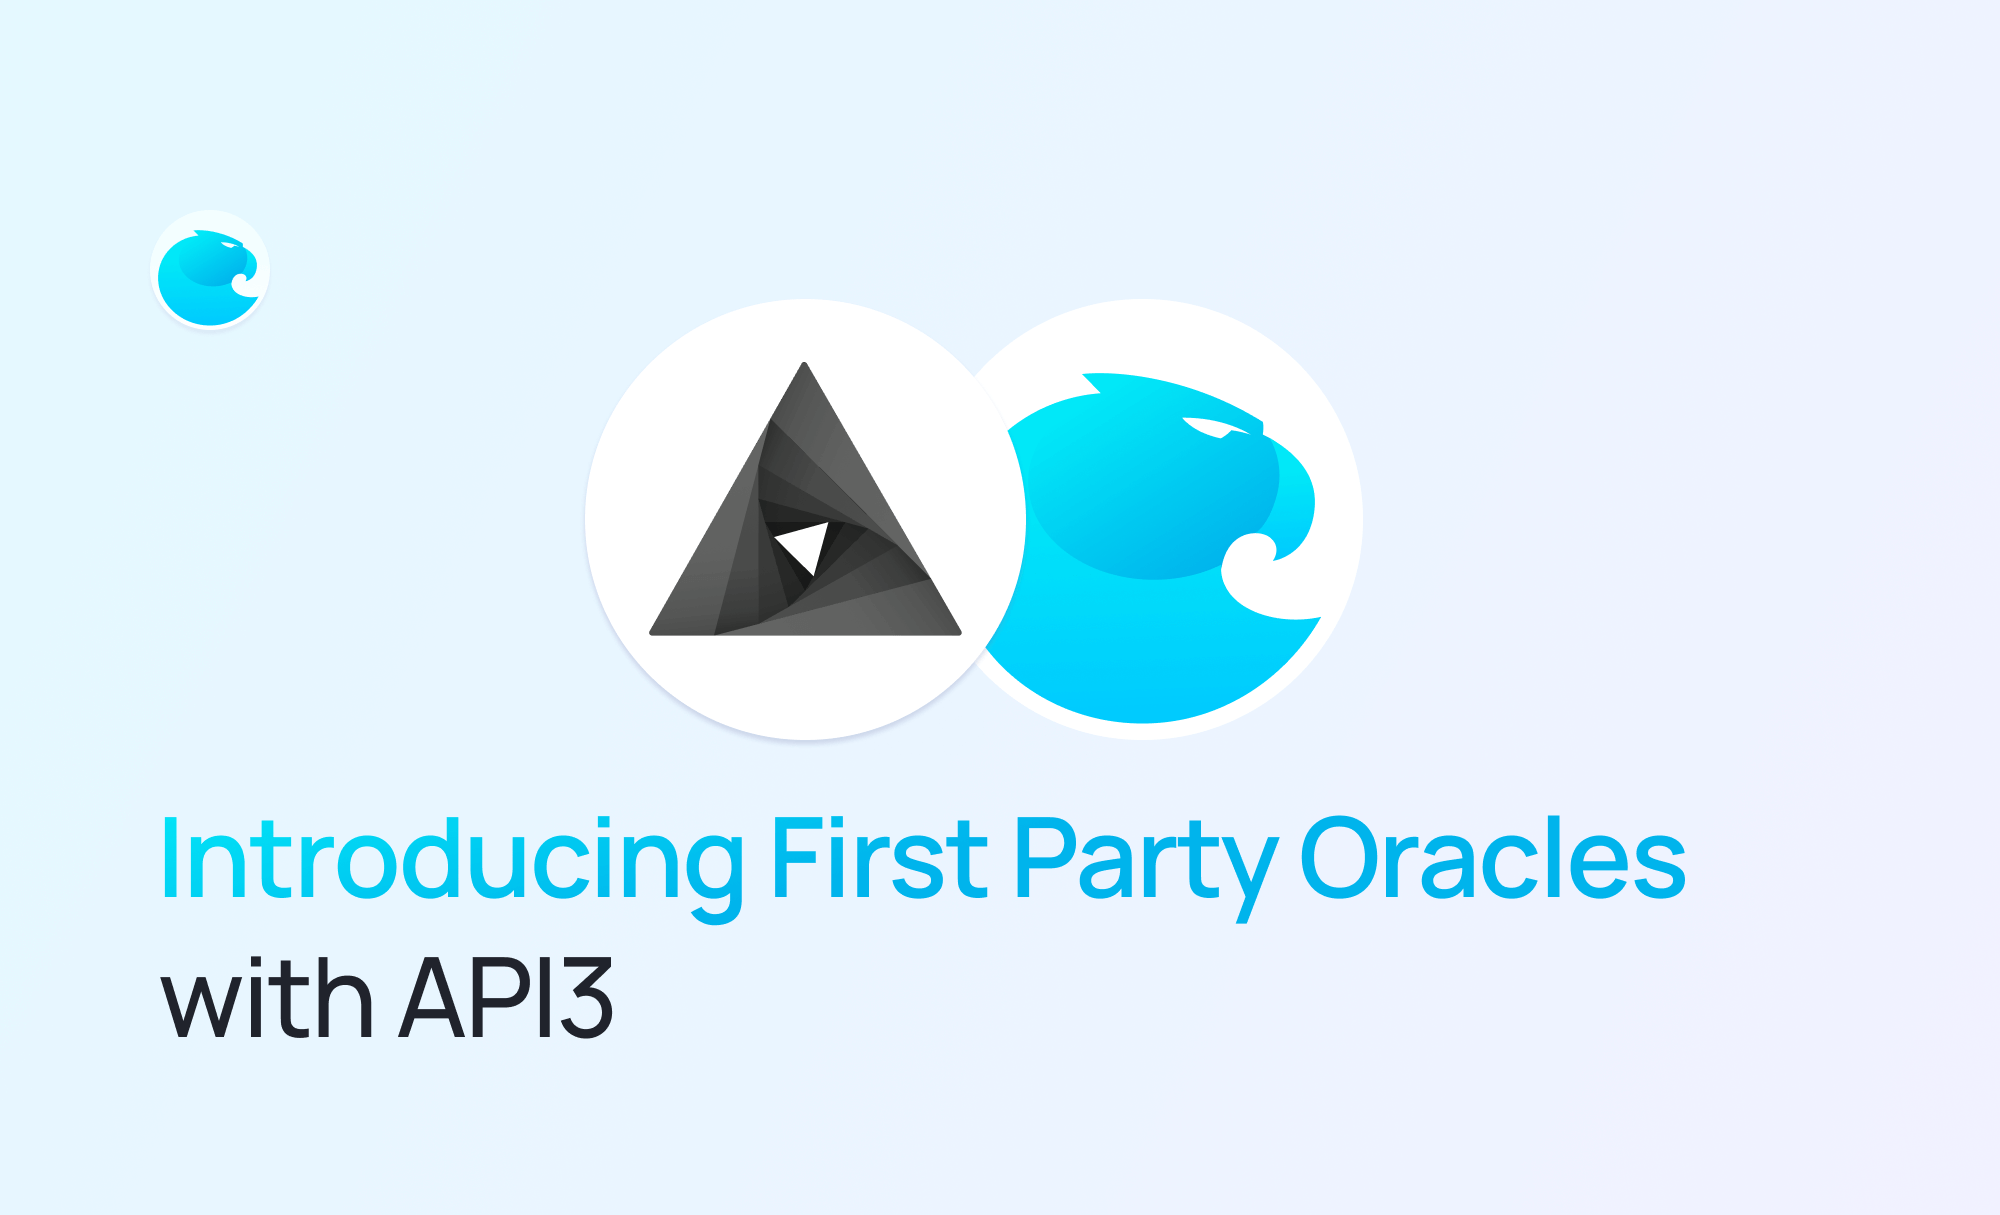 Introducing First Party Oracles with API3